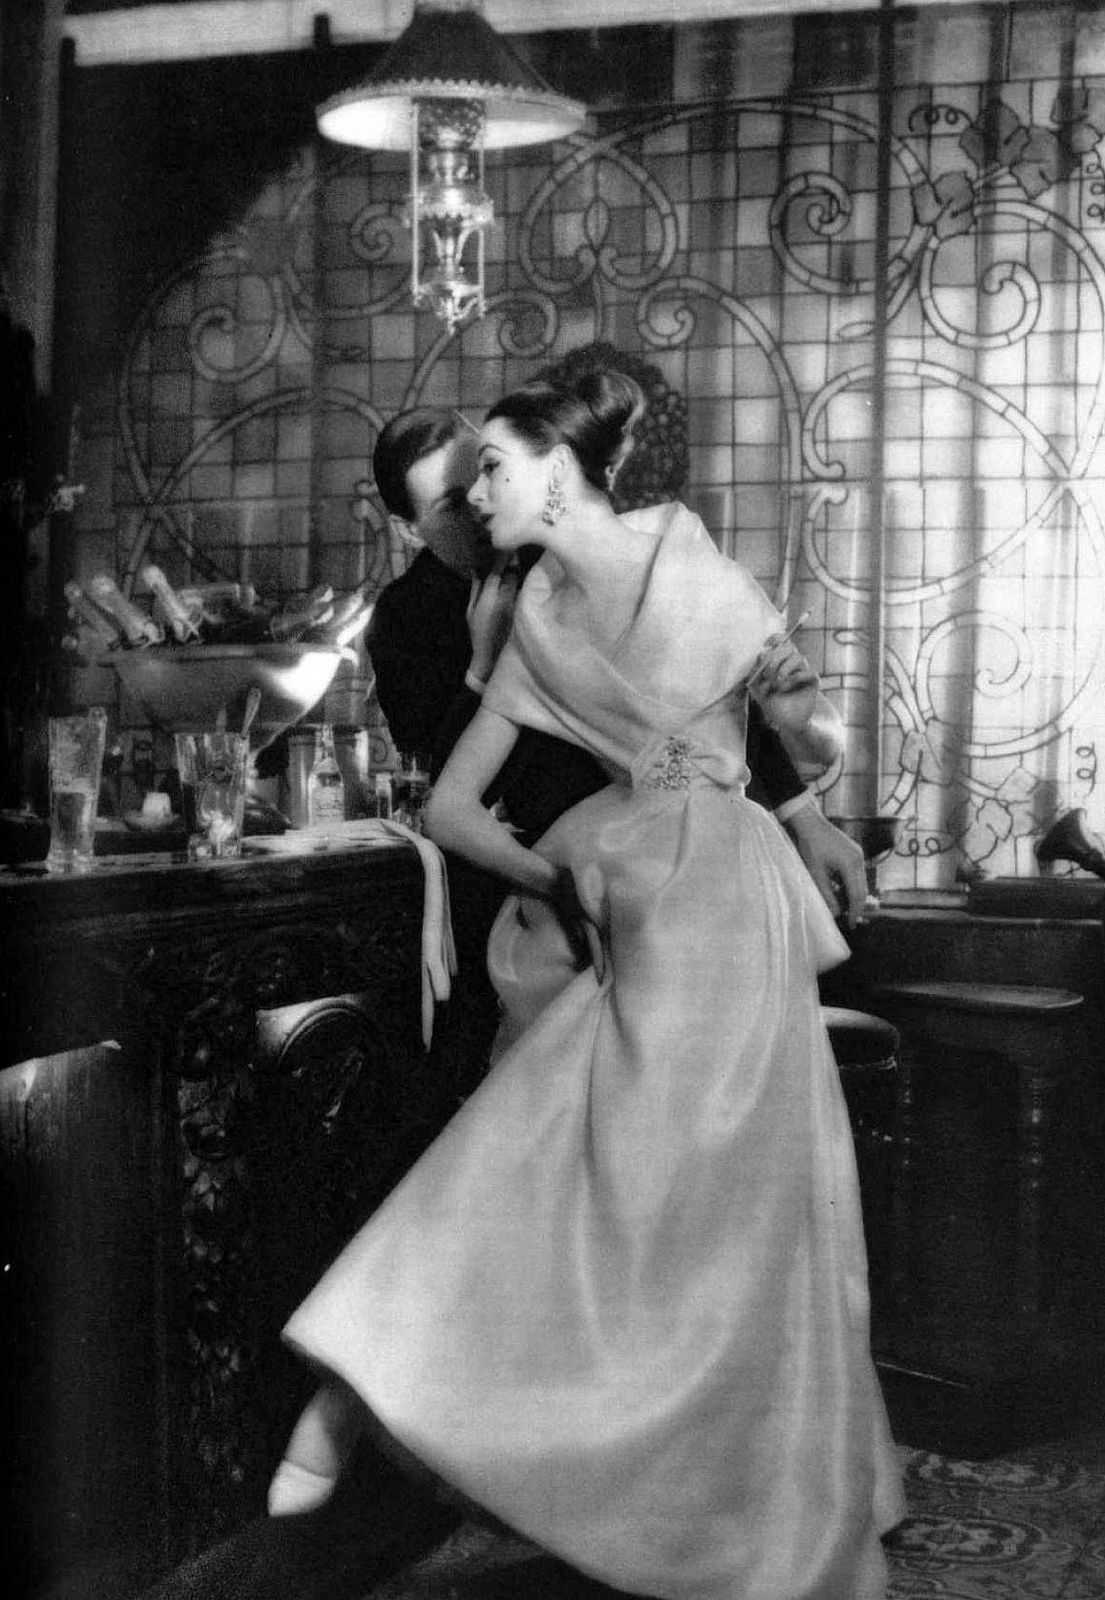 Model (with Robin Tattersall) in pale rose organdy evening gown by Christian Dior, photo by Guy Arsac at the Club du Franc Pinot, Paris, 1957